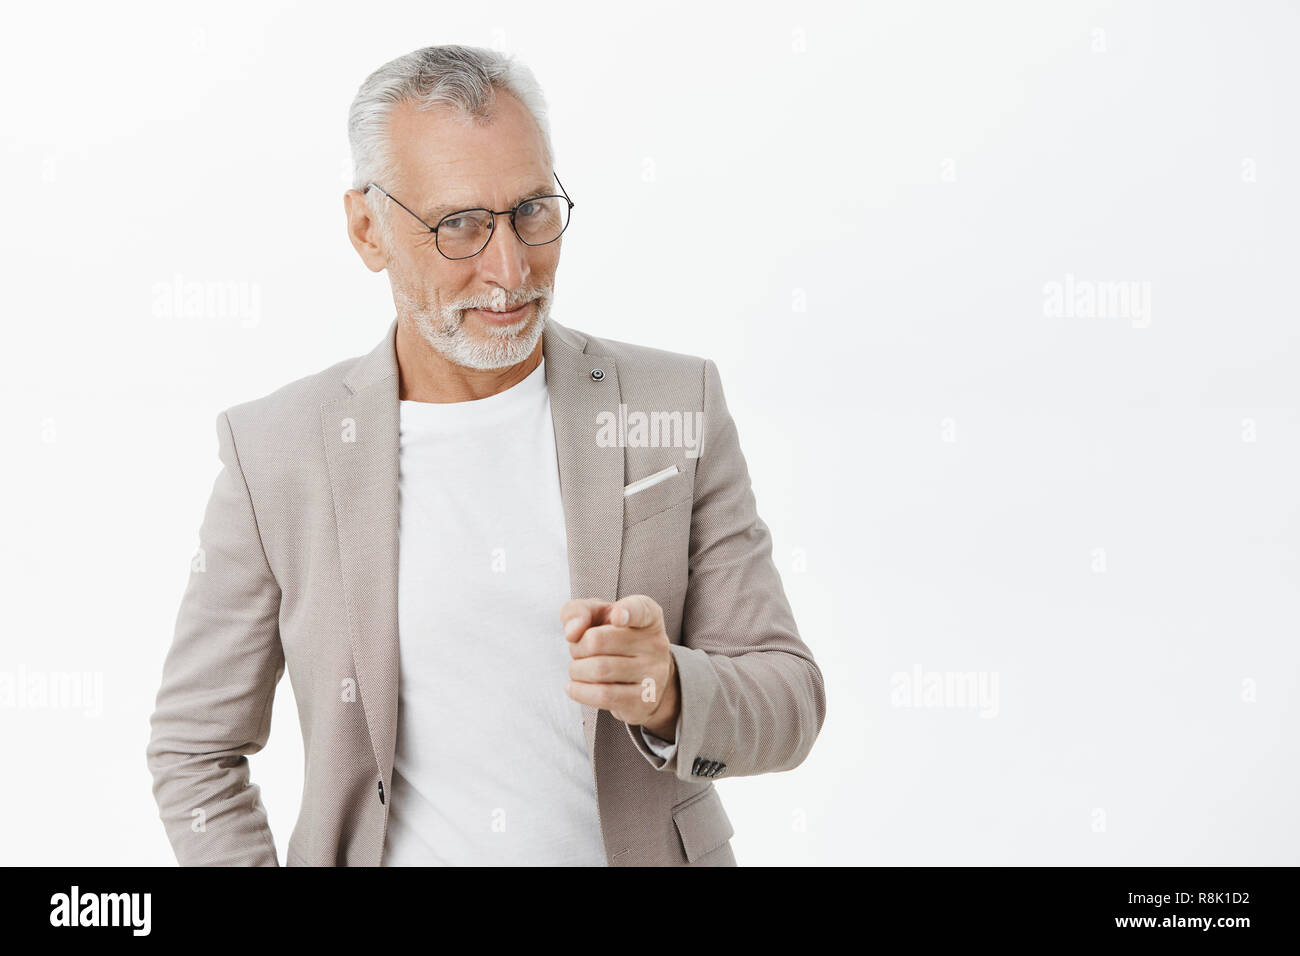 We need you man. Portrait of happy amused and tricky mature macho businessman in glasses and suit smiling looking and pointing at camera as if hinting or picking someone to join team - Stock Image